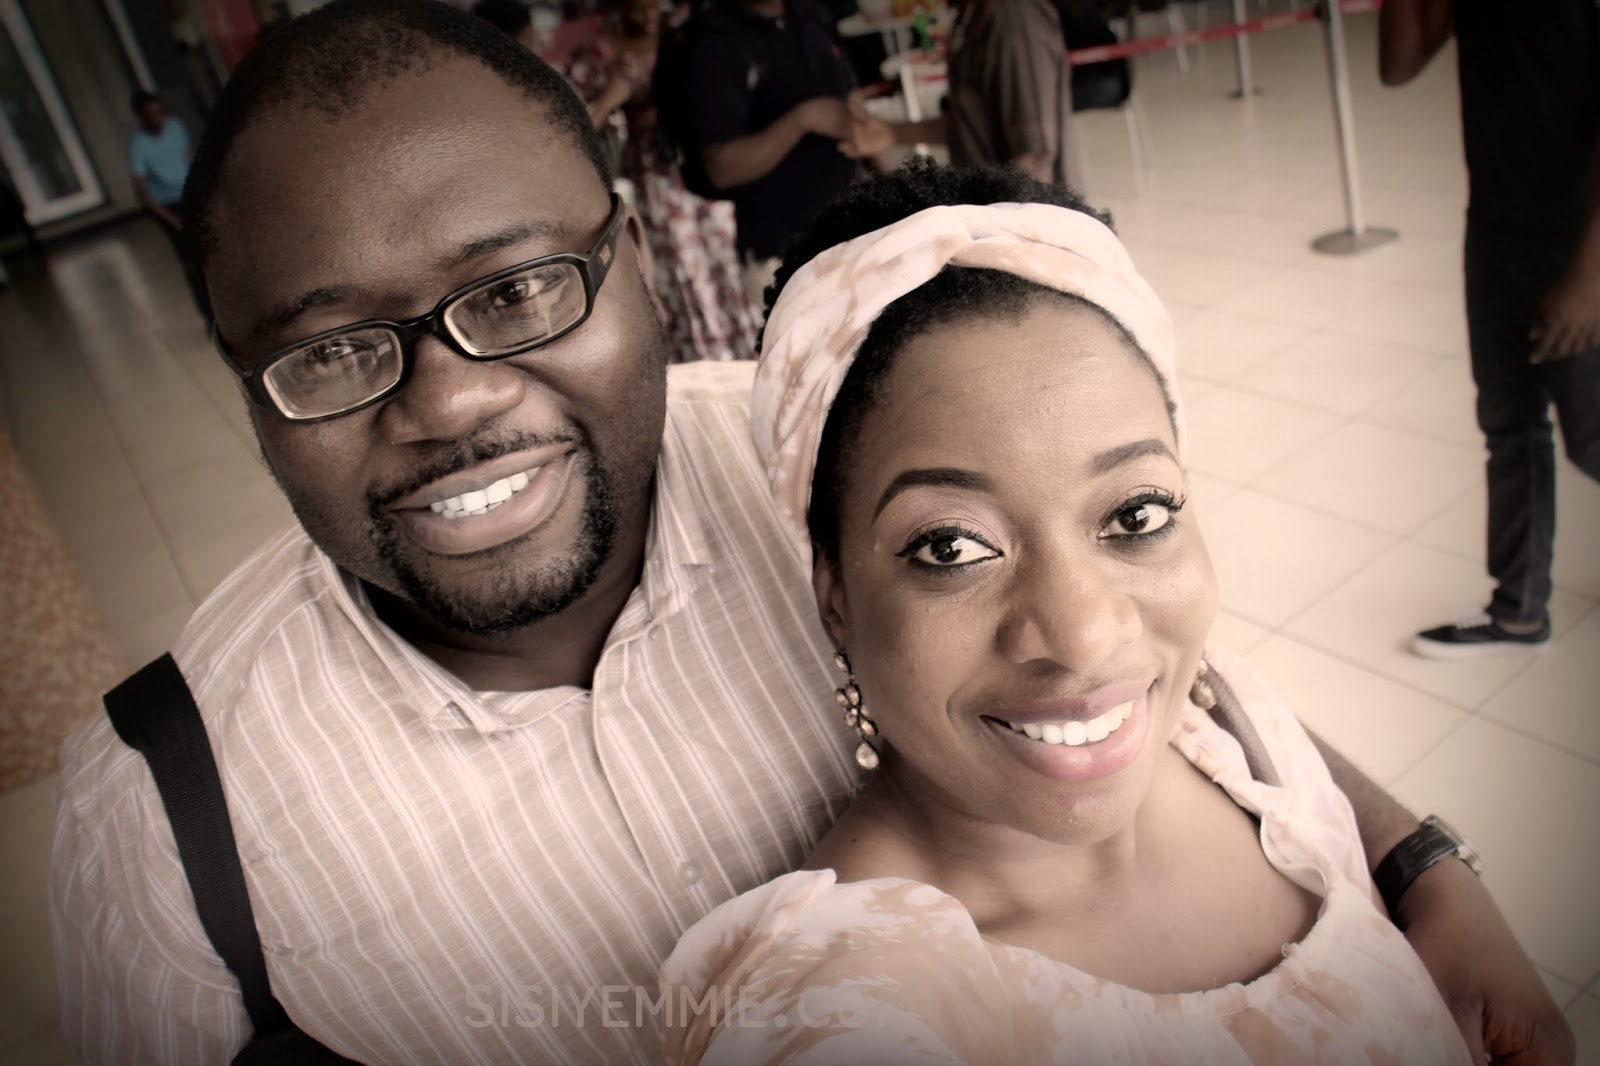 Sisi Yemmie & Her Husband, Bobo, Are Off To South Africa For a Baecation!